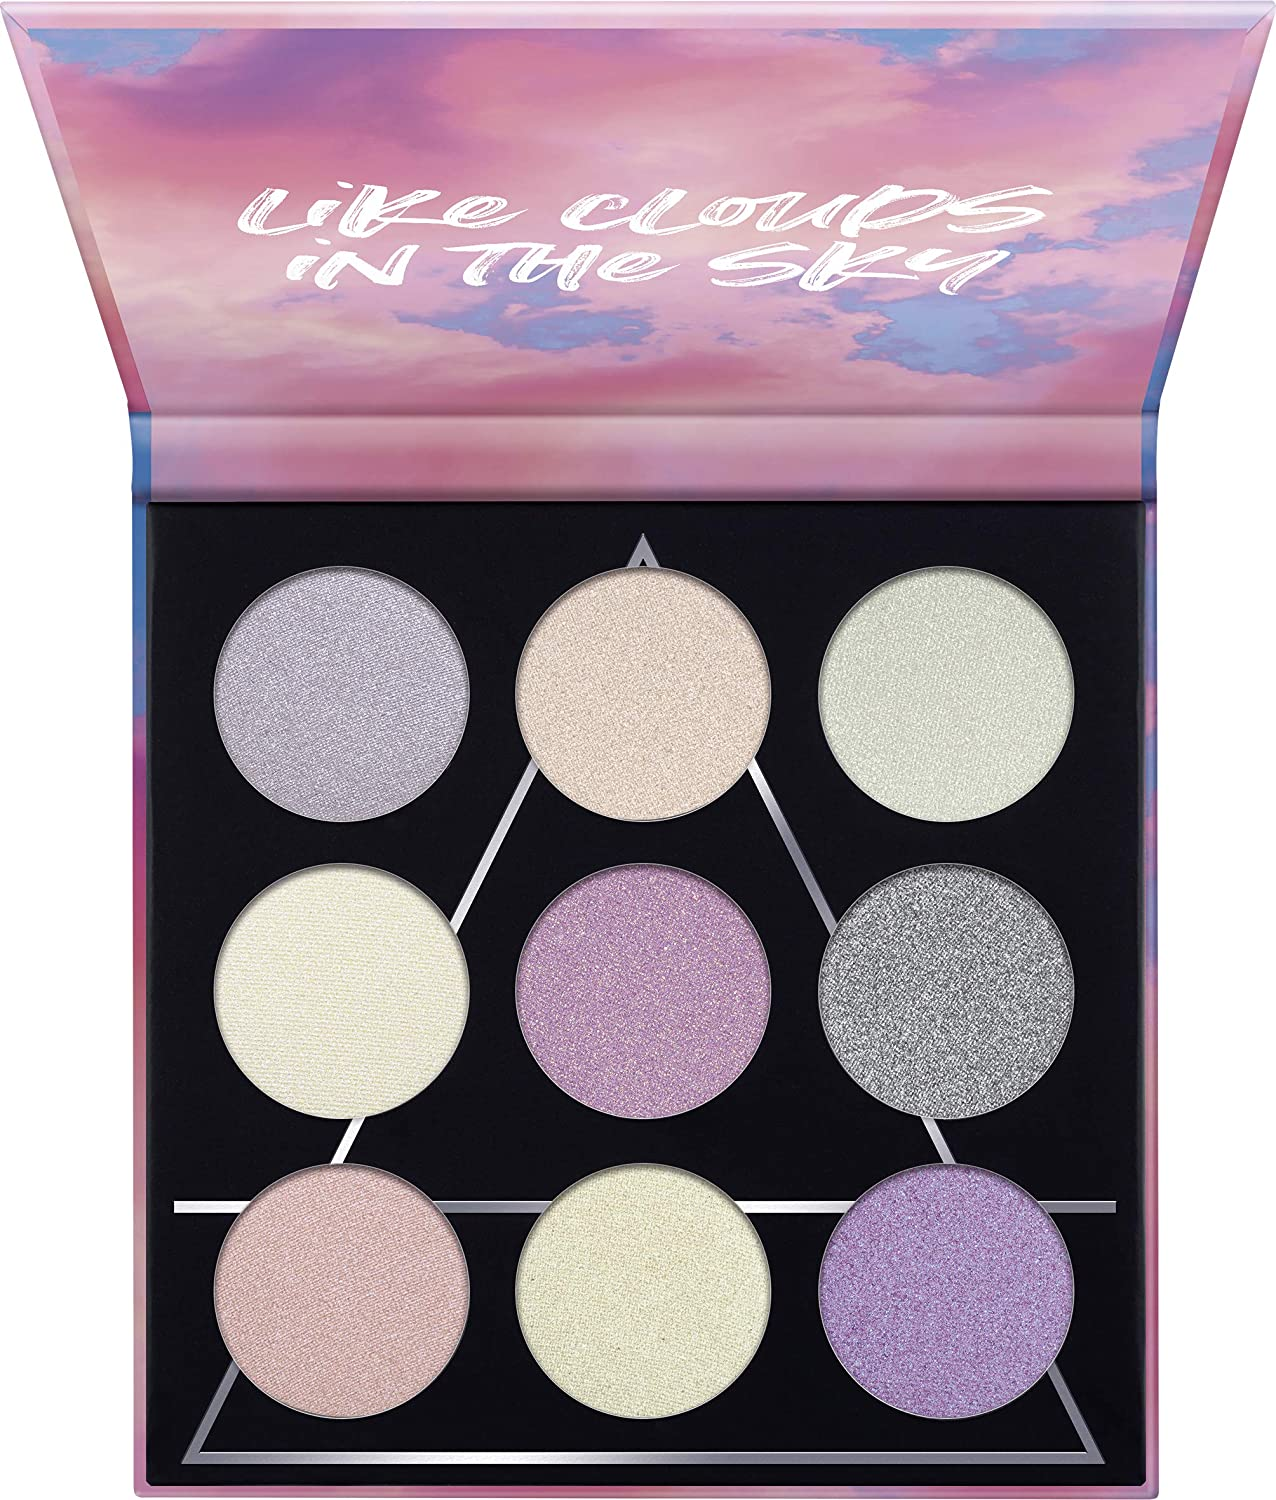 essence | AIR Eyeshadow Palette | 9 Blendable, Dreamy Pink & Purple Shades | Gluten & Paraben Free | Cruelty Free